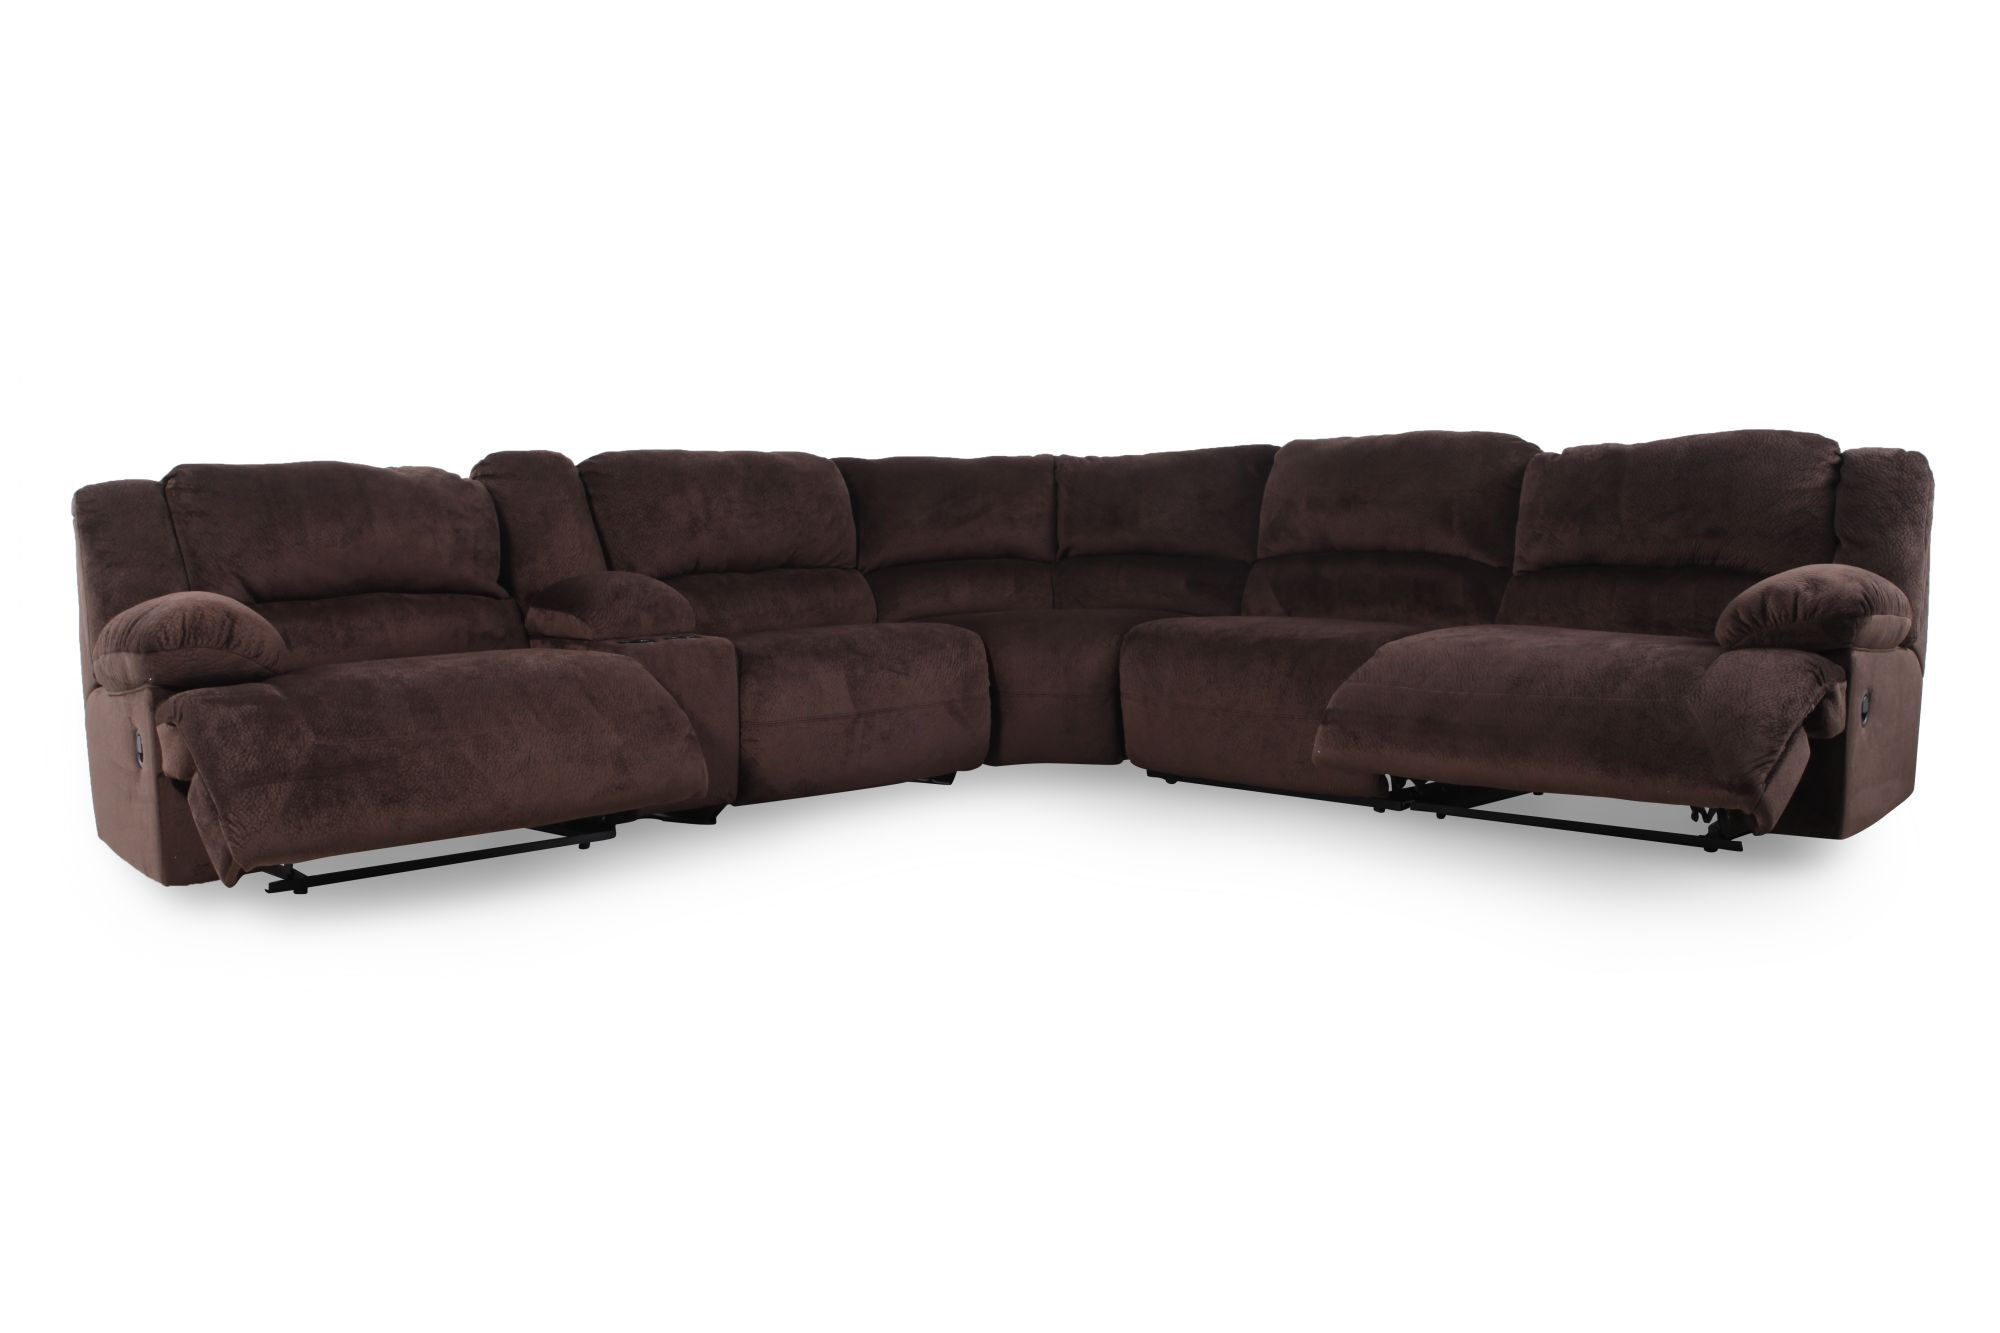 Microfiber 131 5 Sectional In Chocolate Brown Mathis Brothers Furniture